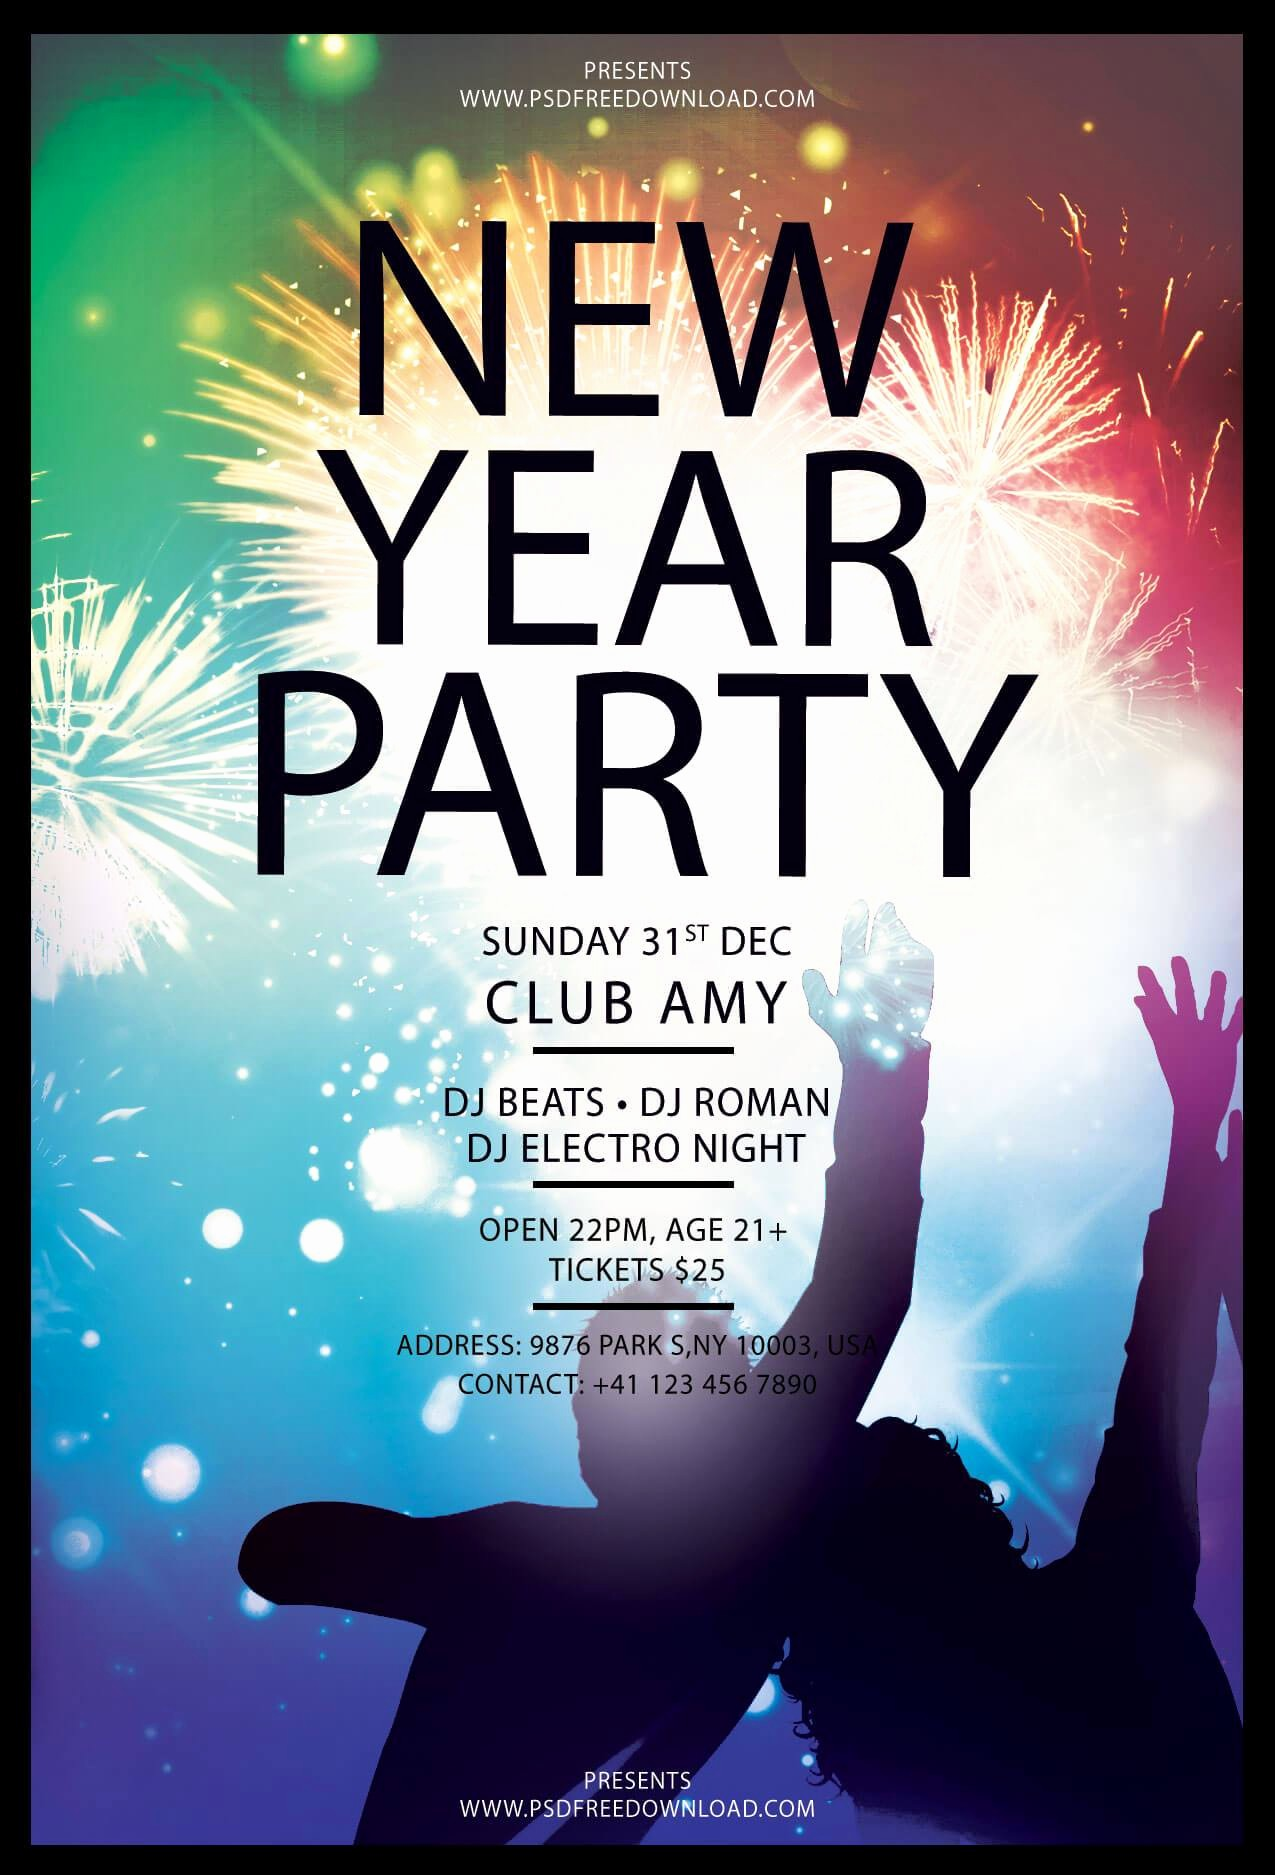 Party Flyer Templates Free Downloads Best Of New Year Party Flyer Free Template Psd